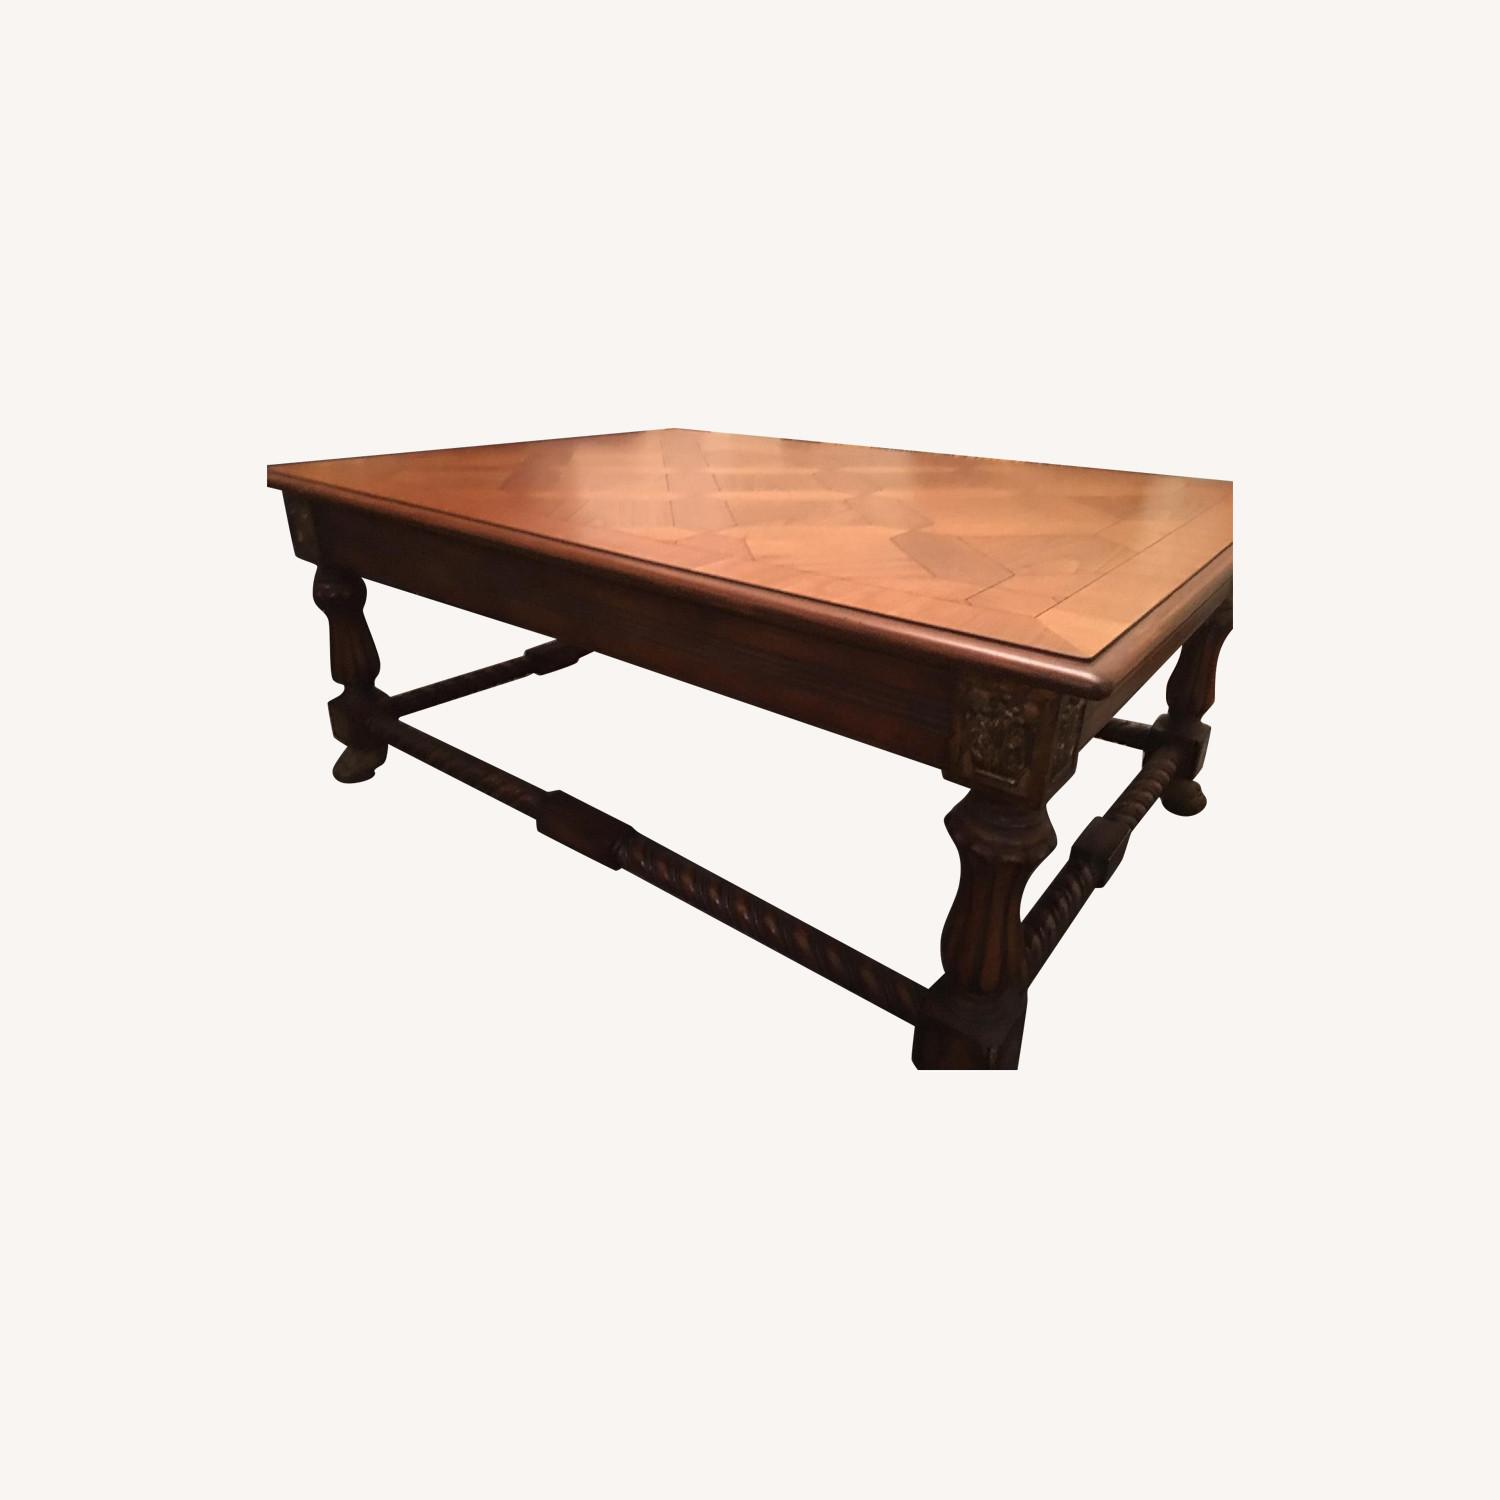 Large Coffee Table w/ Inlaid Wood - image-0